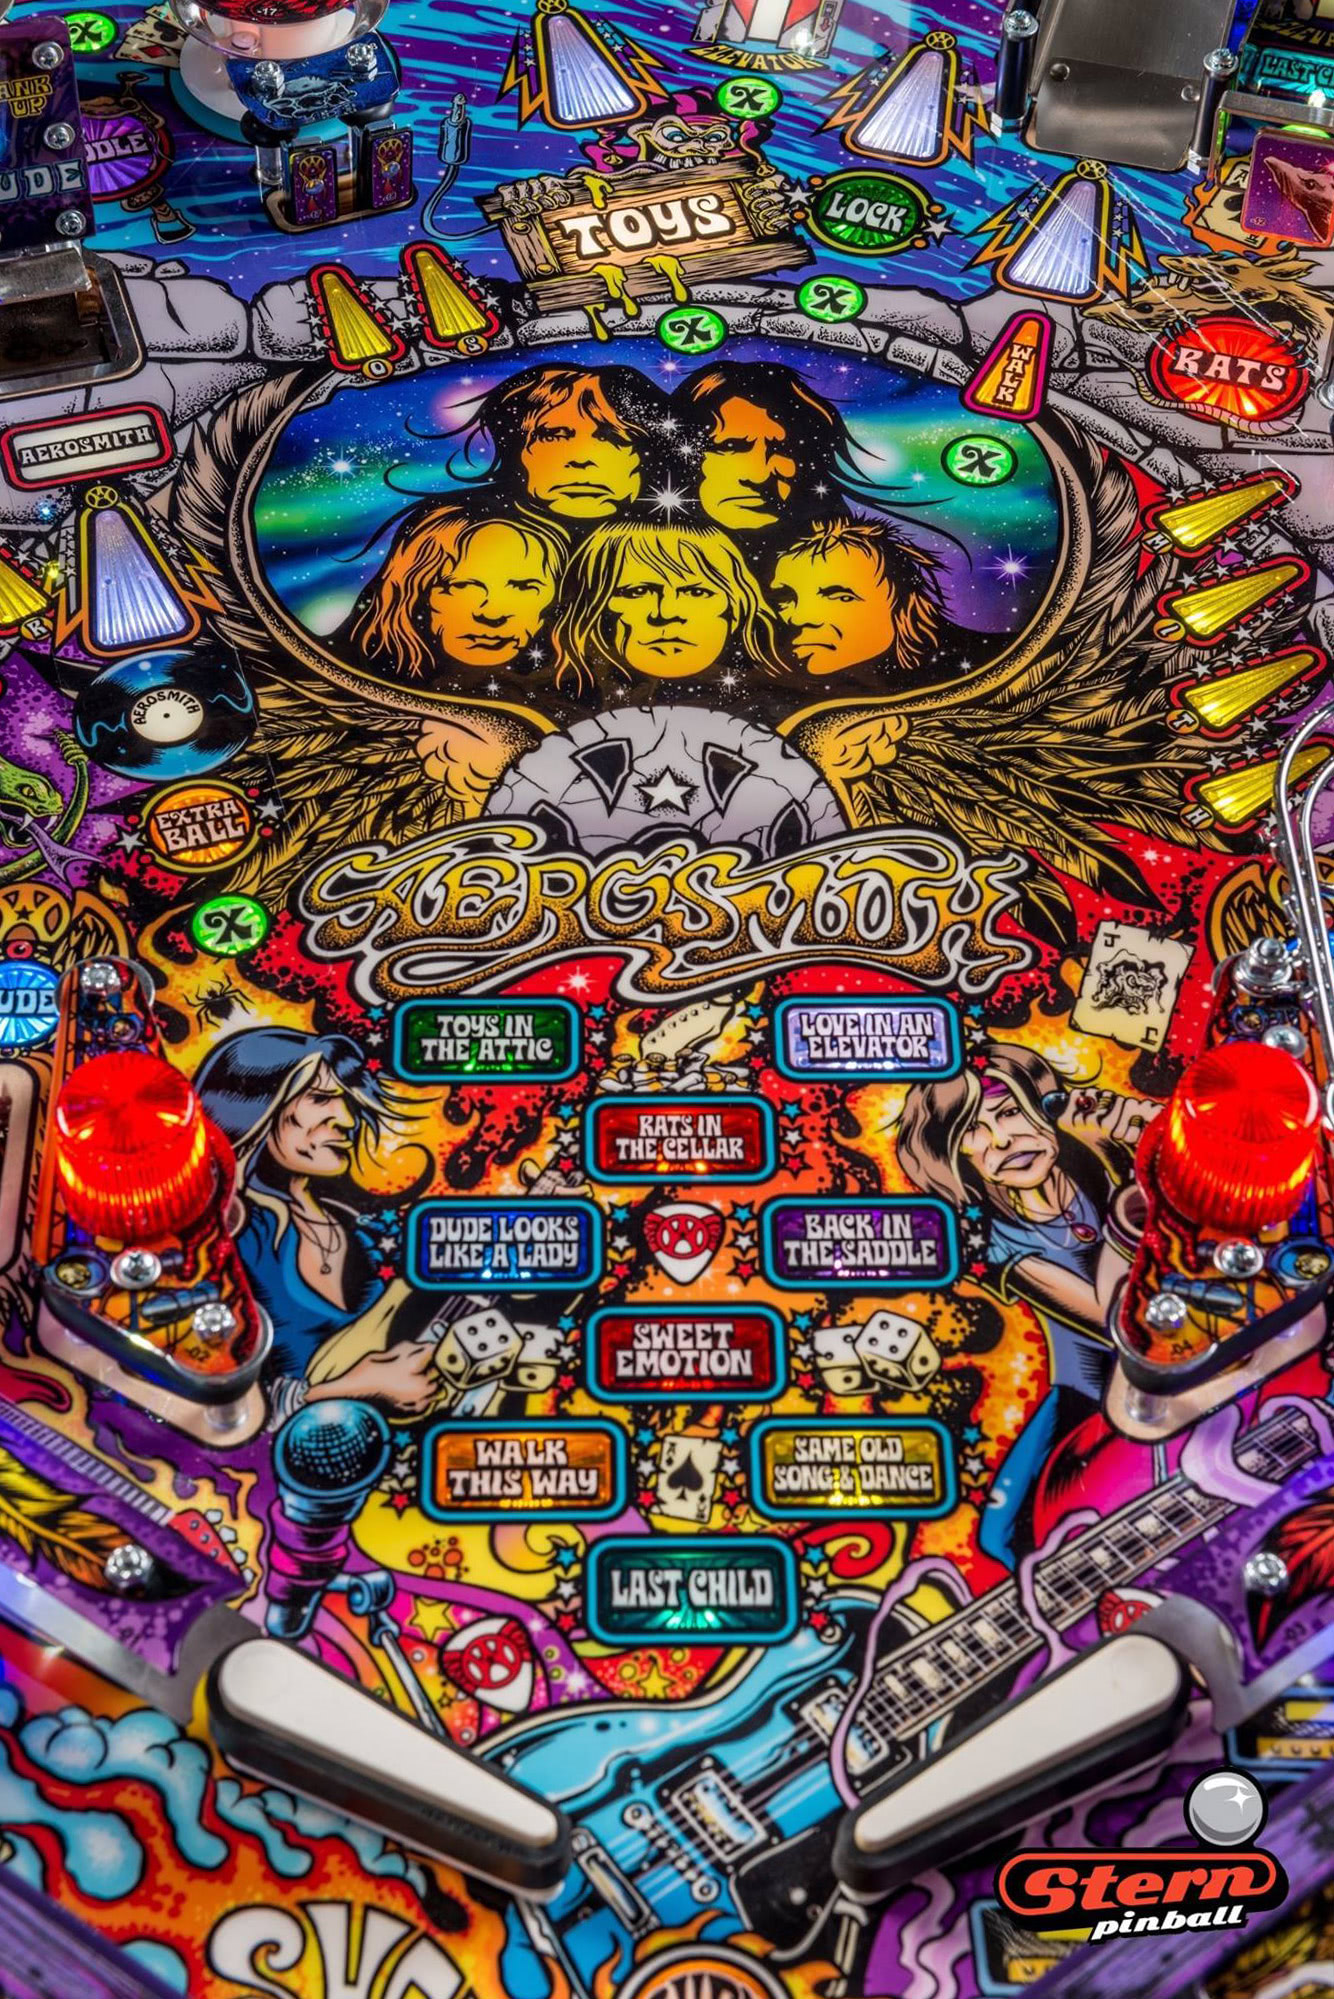 Stern Aerosmith Pro Pinball Machine Liberty Games